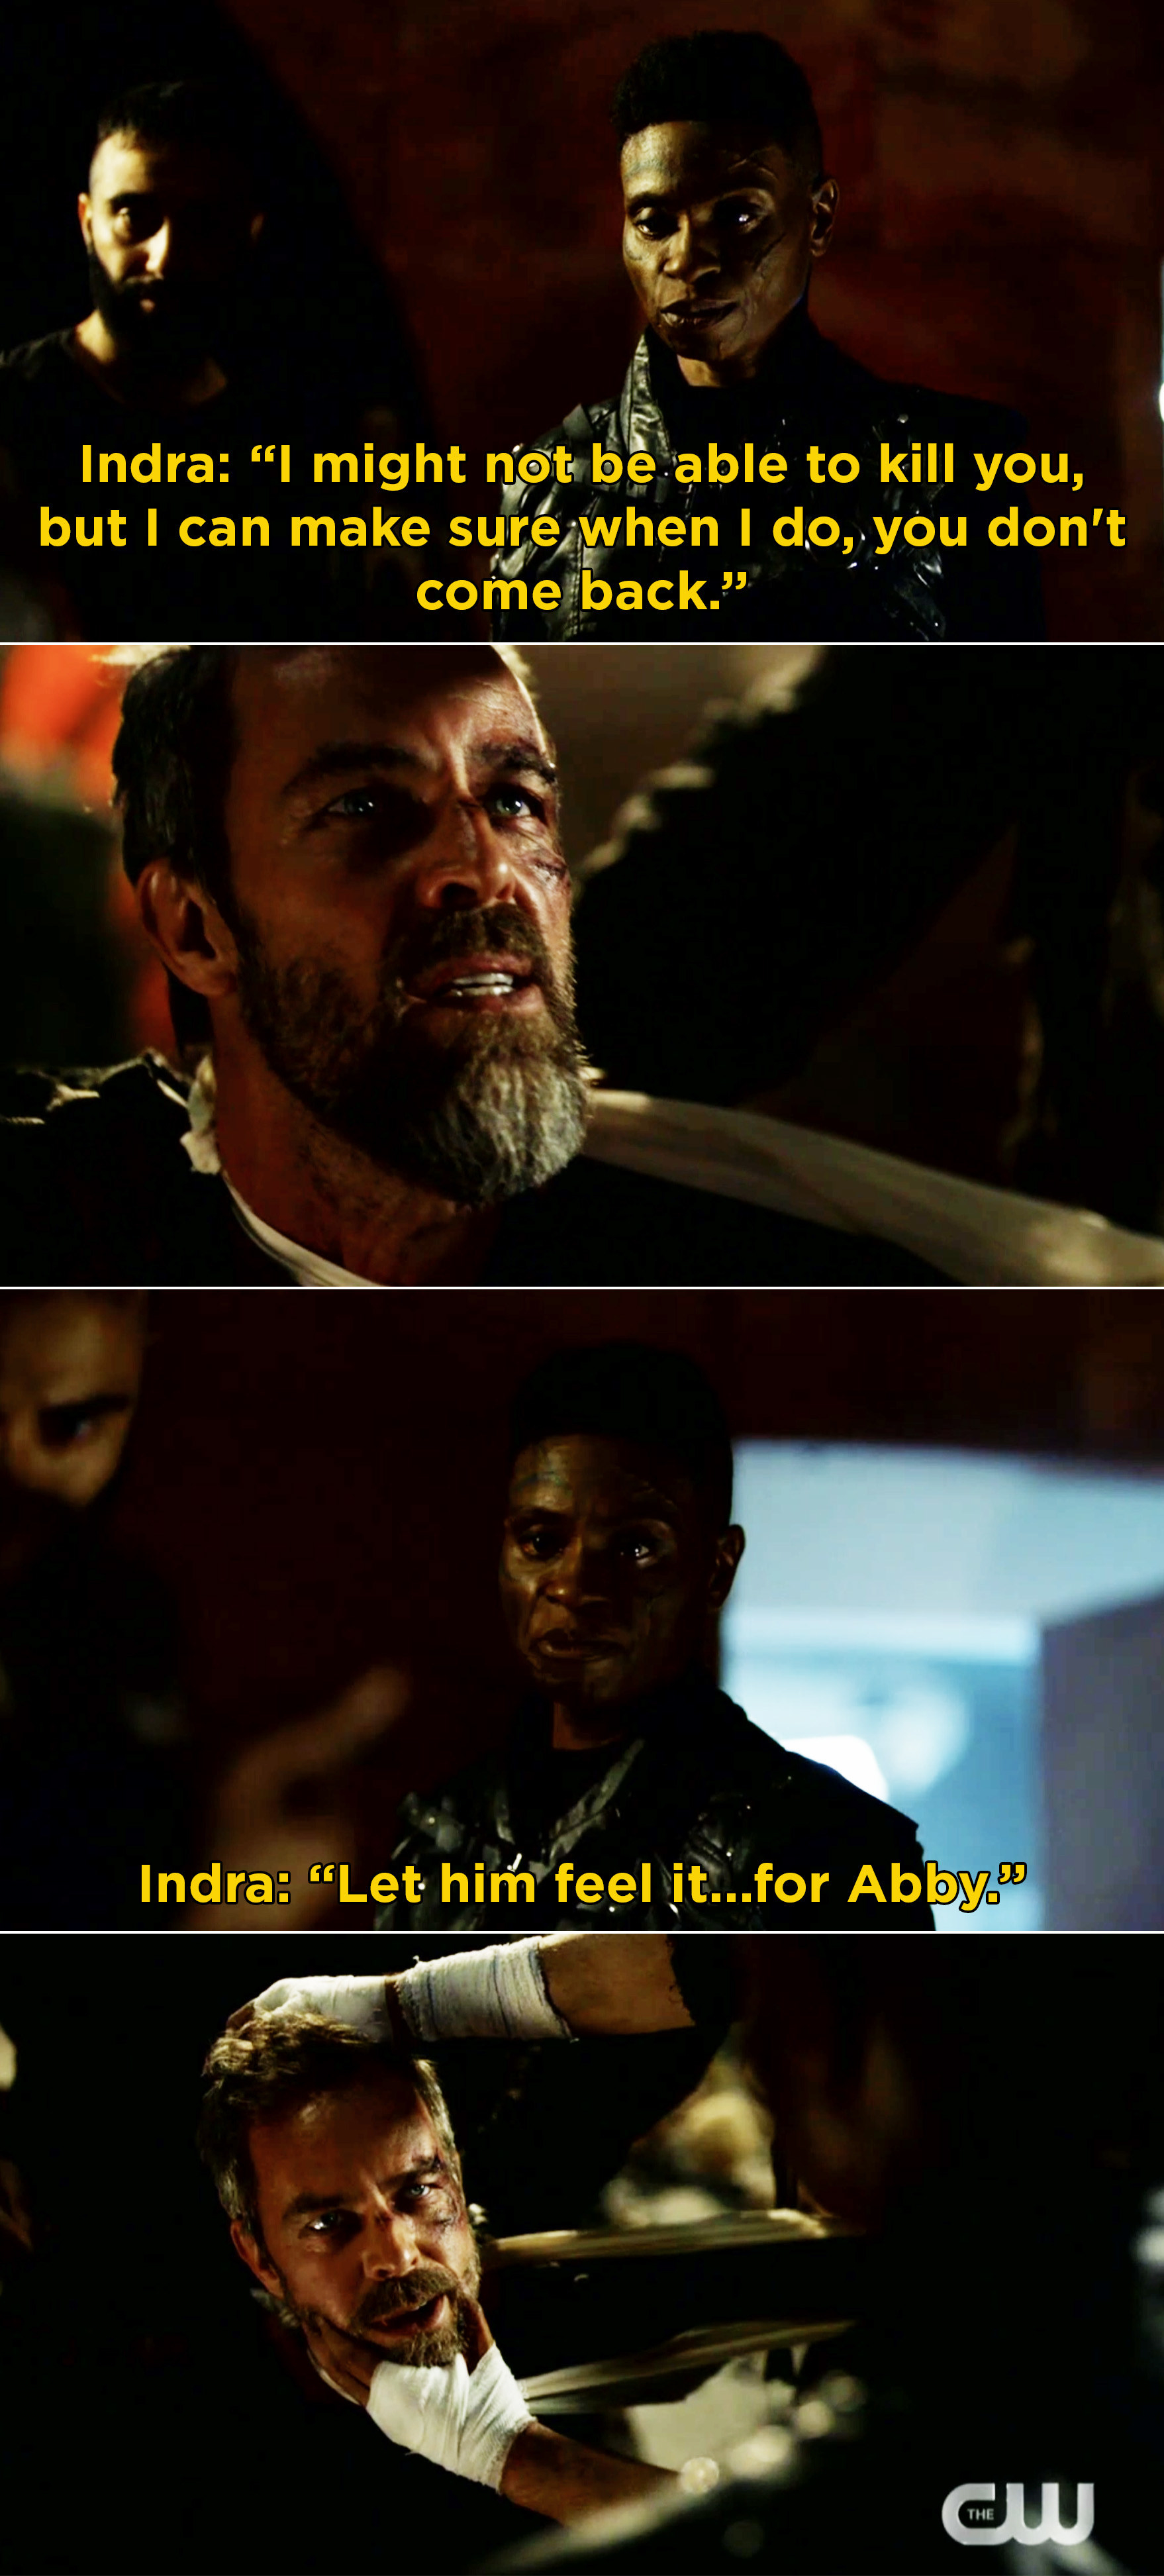 """Indra saying, """"I might not be able to kill you, but I can make sure when I do, you don't come back. Let him feel it...for Abby"""""""